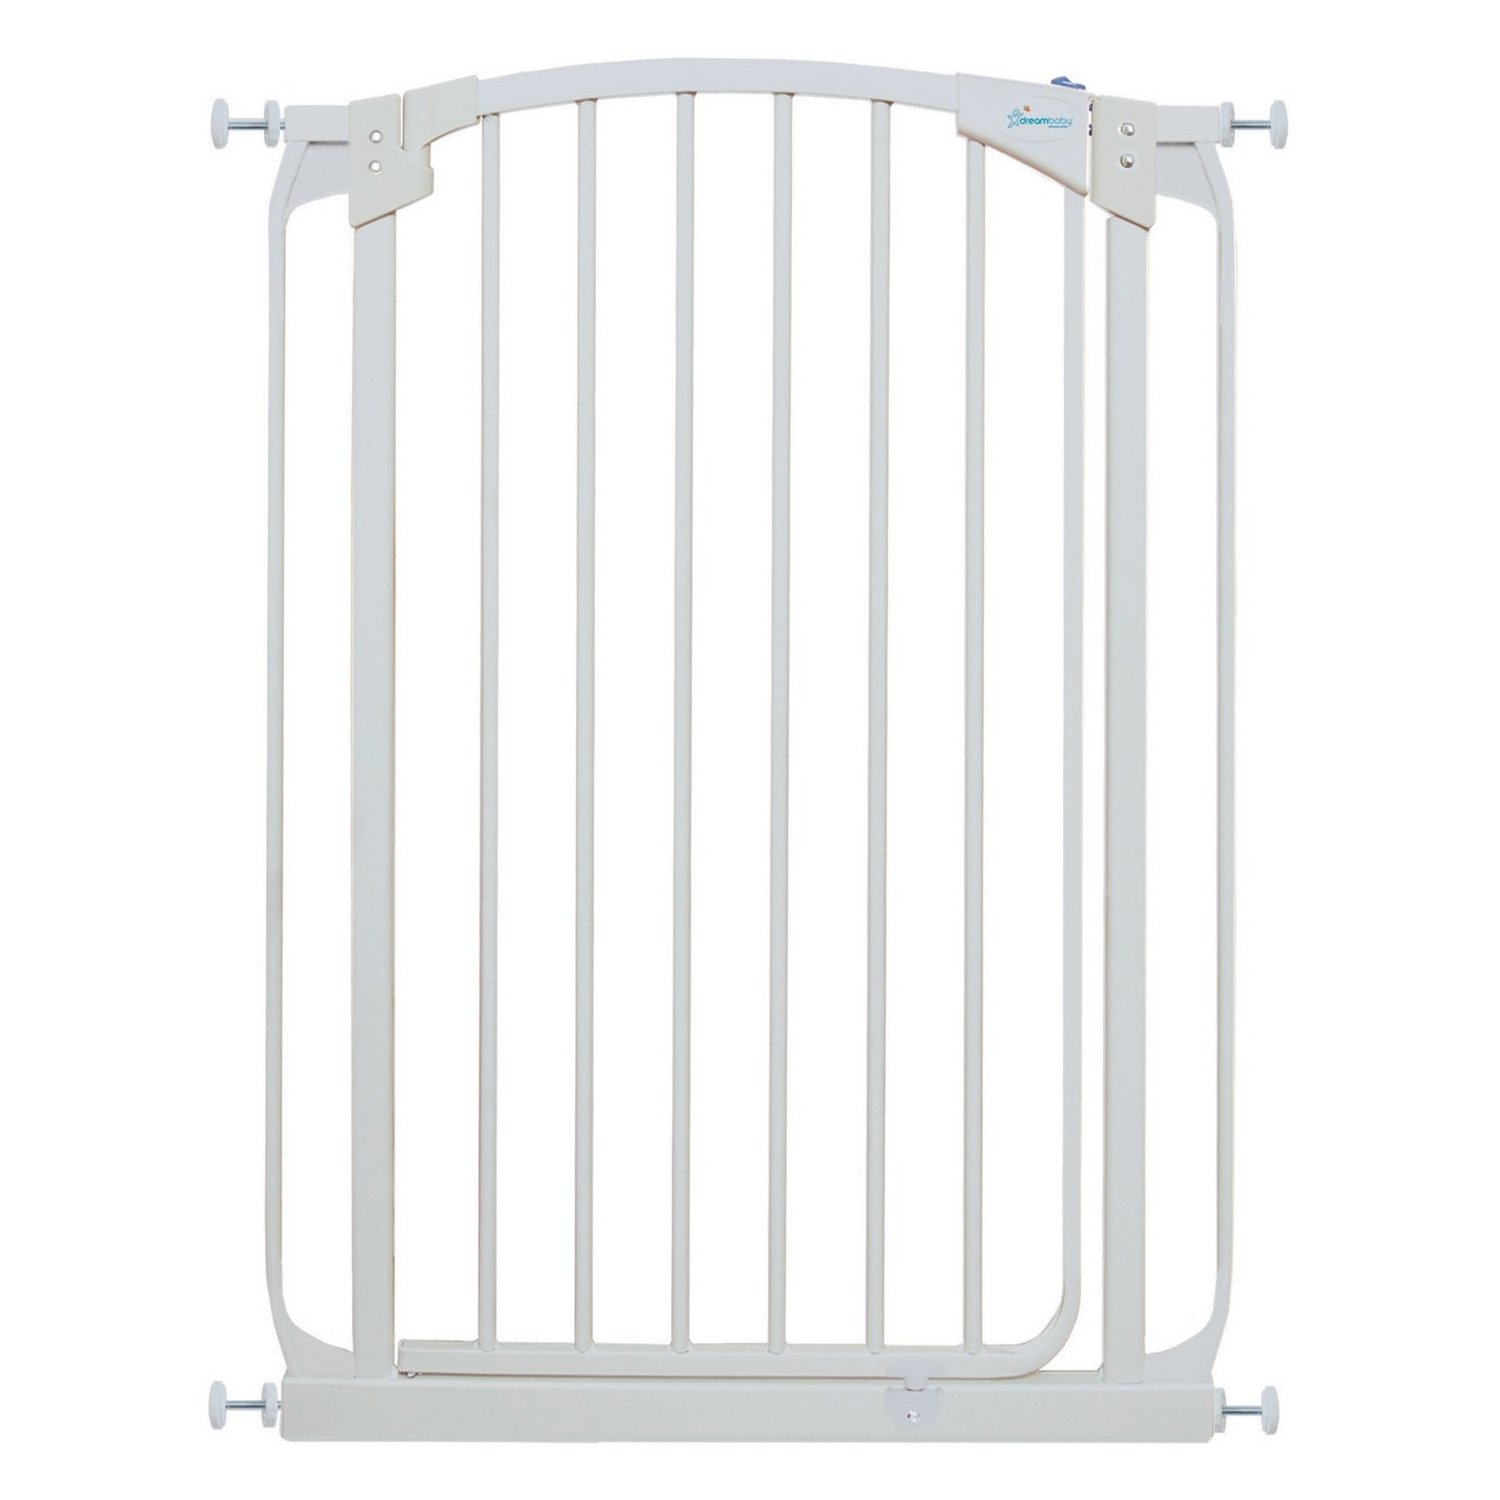 Dreambaby Extra-tall Safety Gate